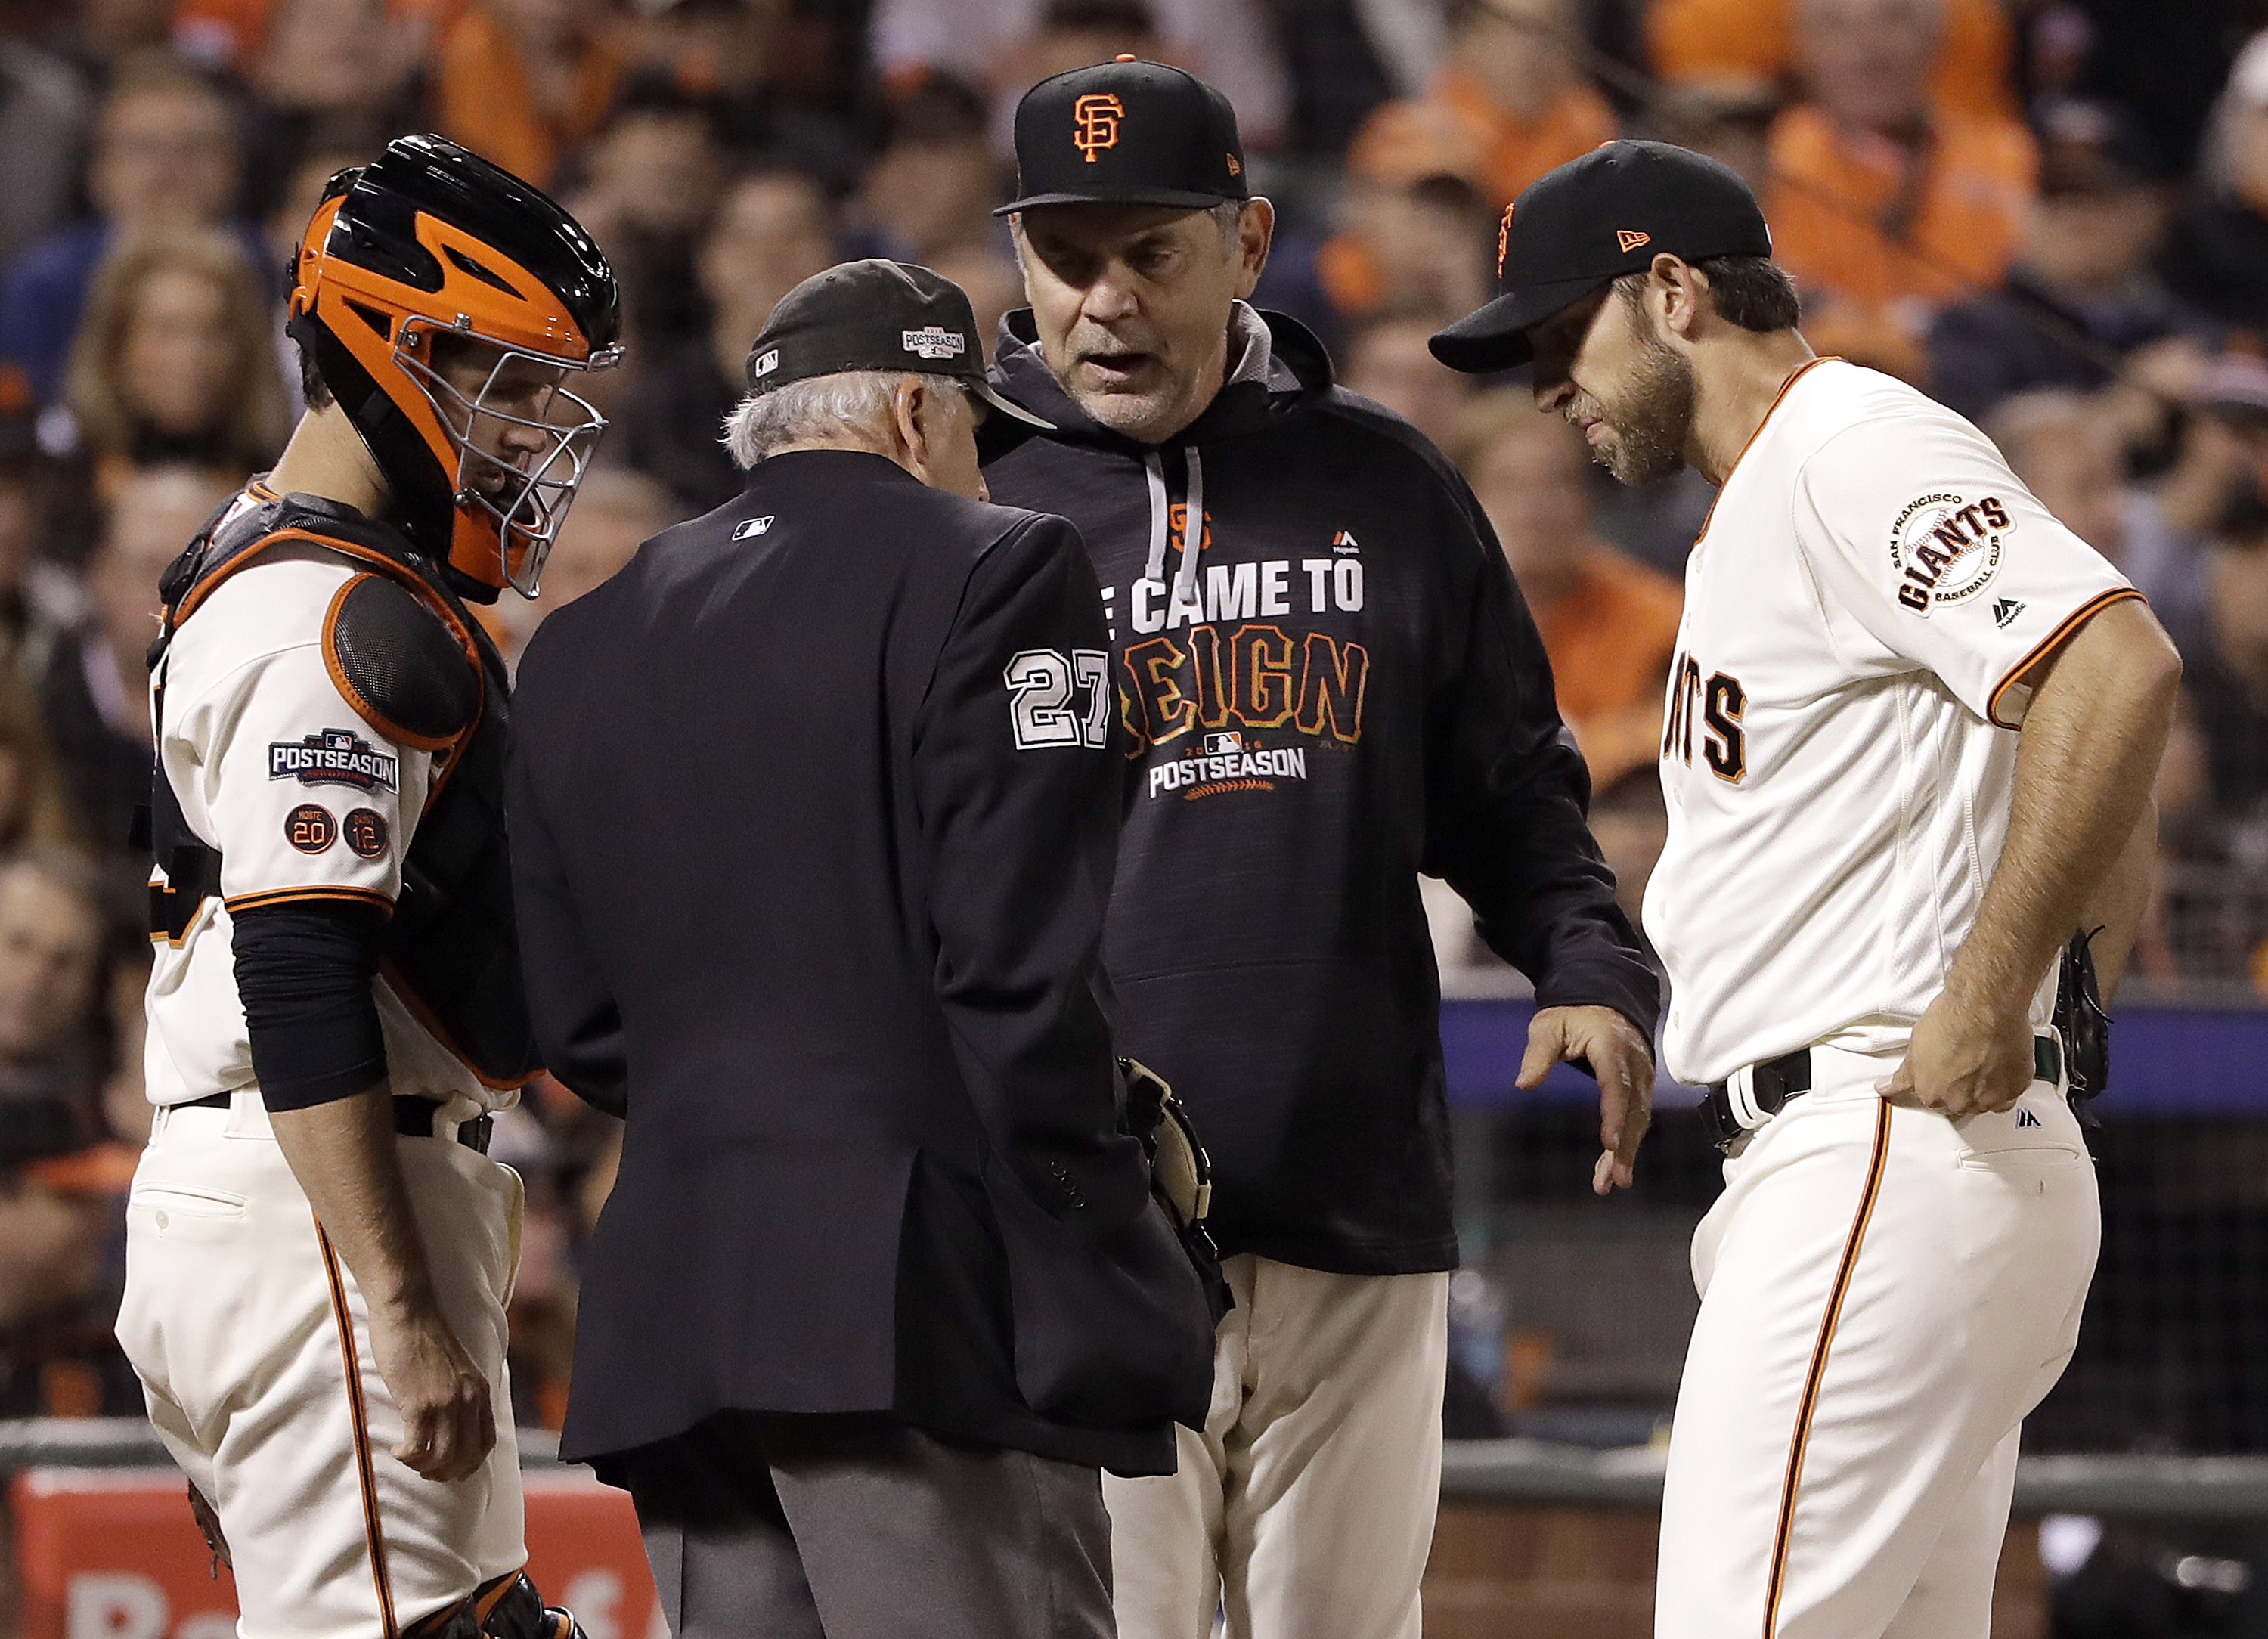 Home plate umpire Larry Vanover (27) talks with San Francisco Giants catcher Buster Posey, from left, manager Bruce Bochy and pitcher Madison Bumgarner during the second inning of Game 3 of baseball's National League Division Series between the Giants and